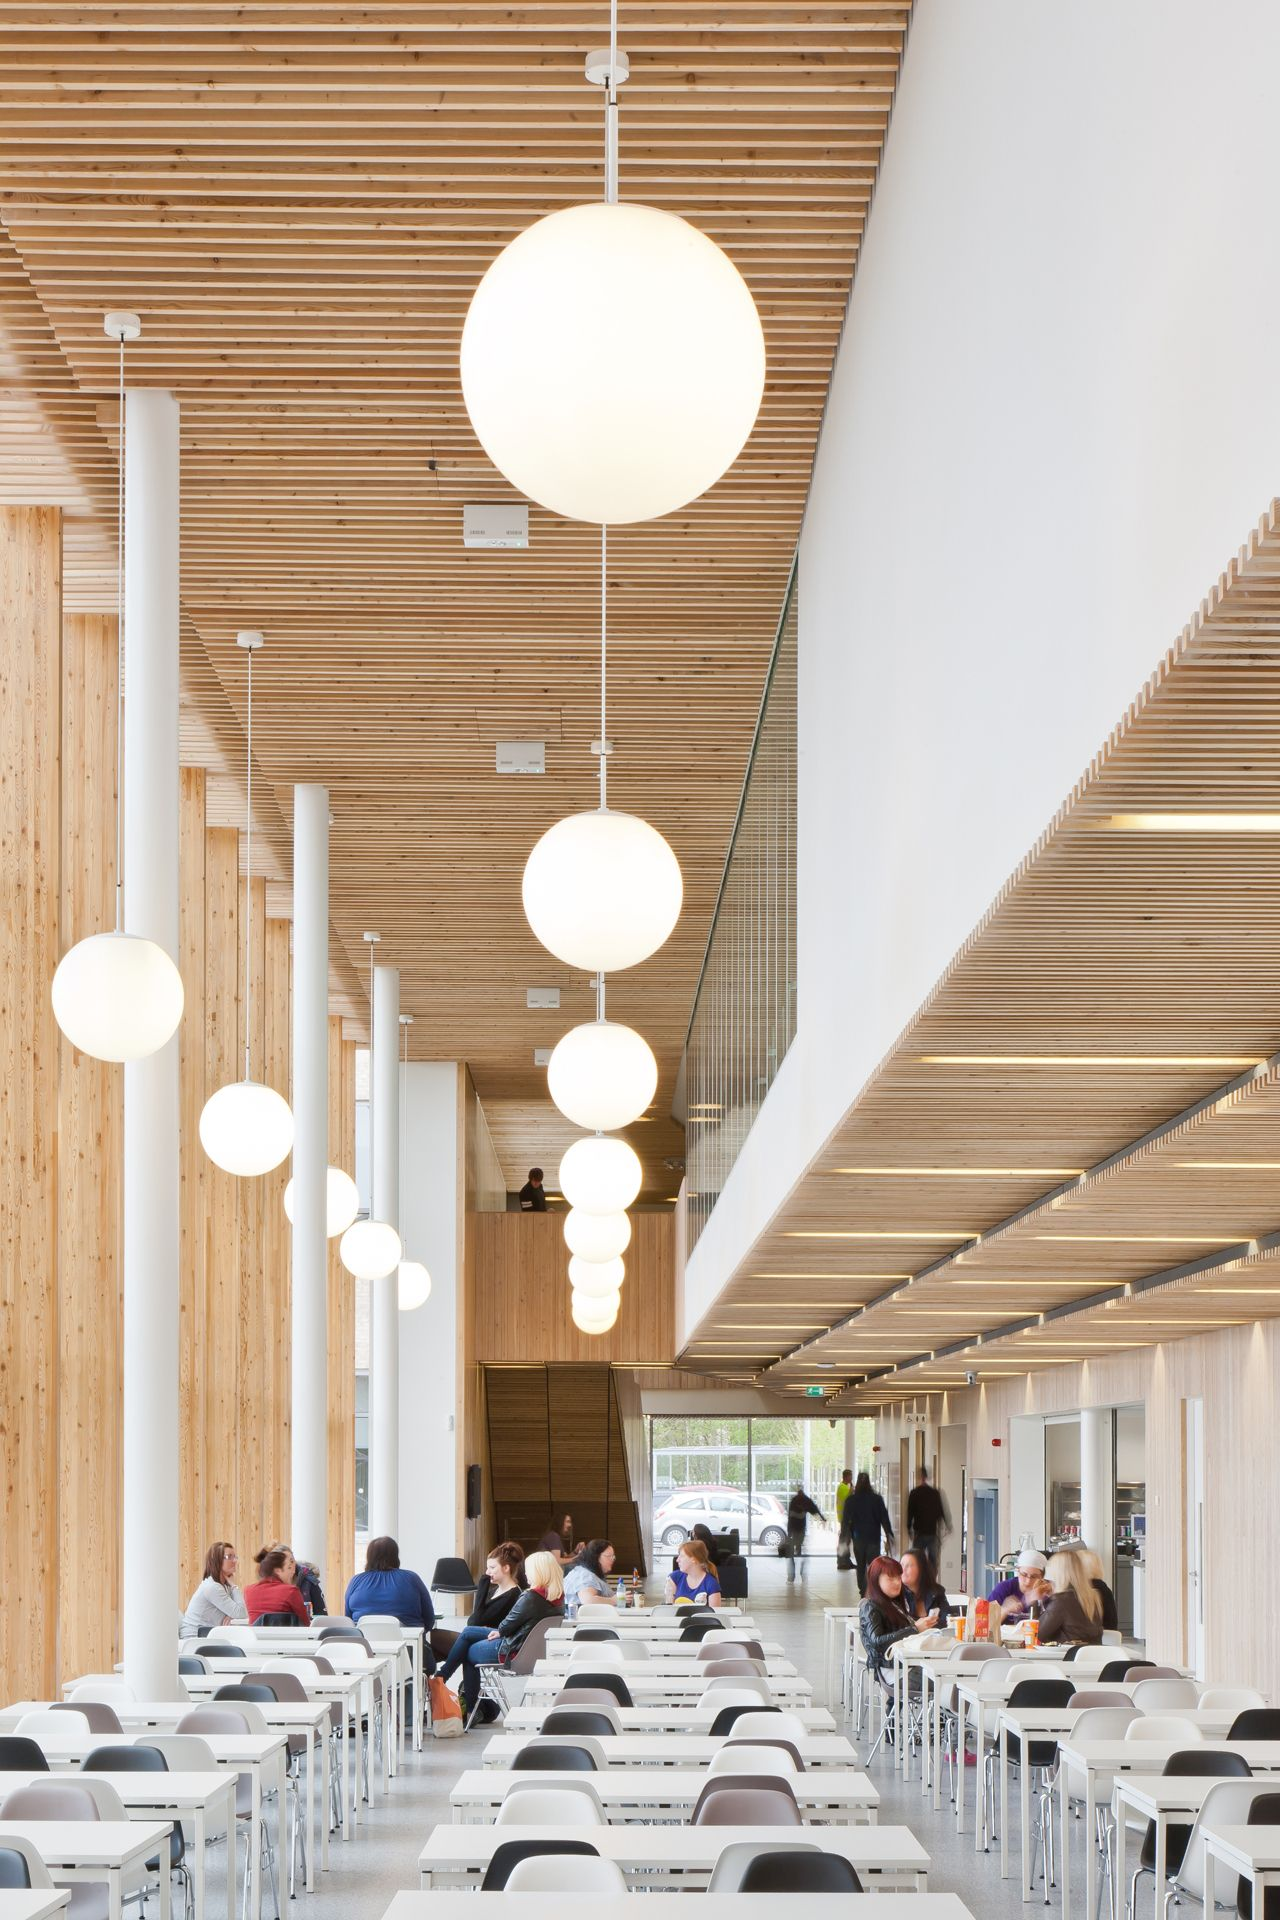 50aef085b3fc4b278500013b Stirling Campus In Forth Valley College Reiach And Hall Architects Forth Valley Co Cafeteria Design College Dining Hall College Design